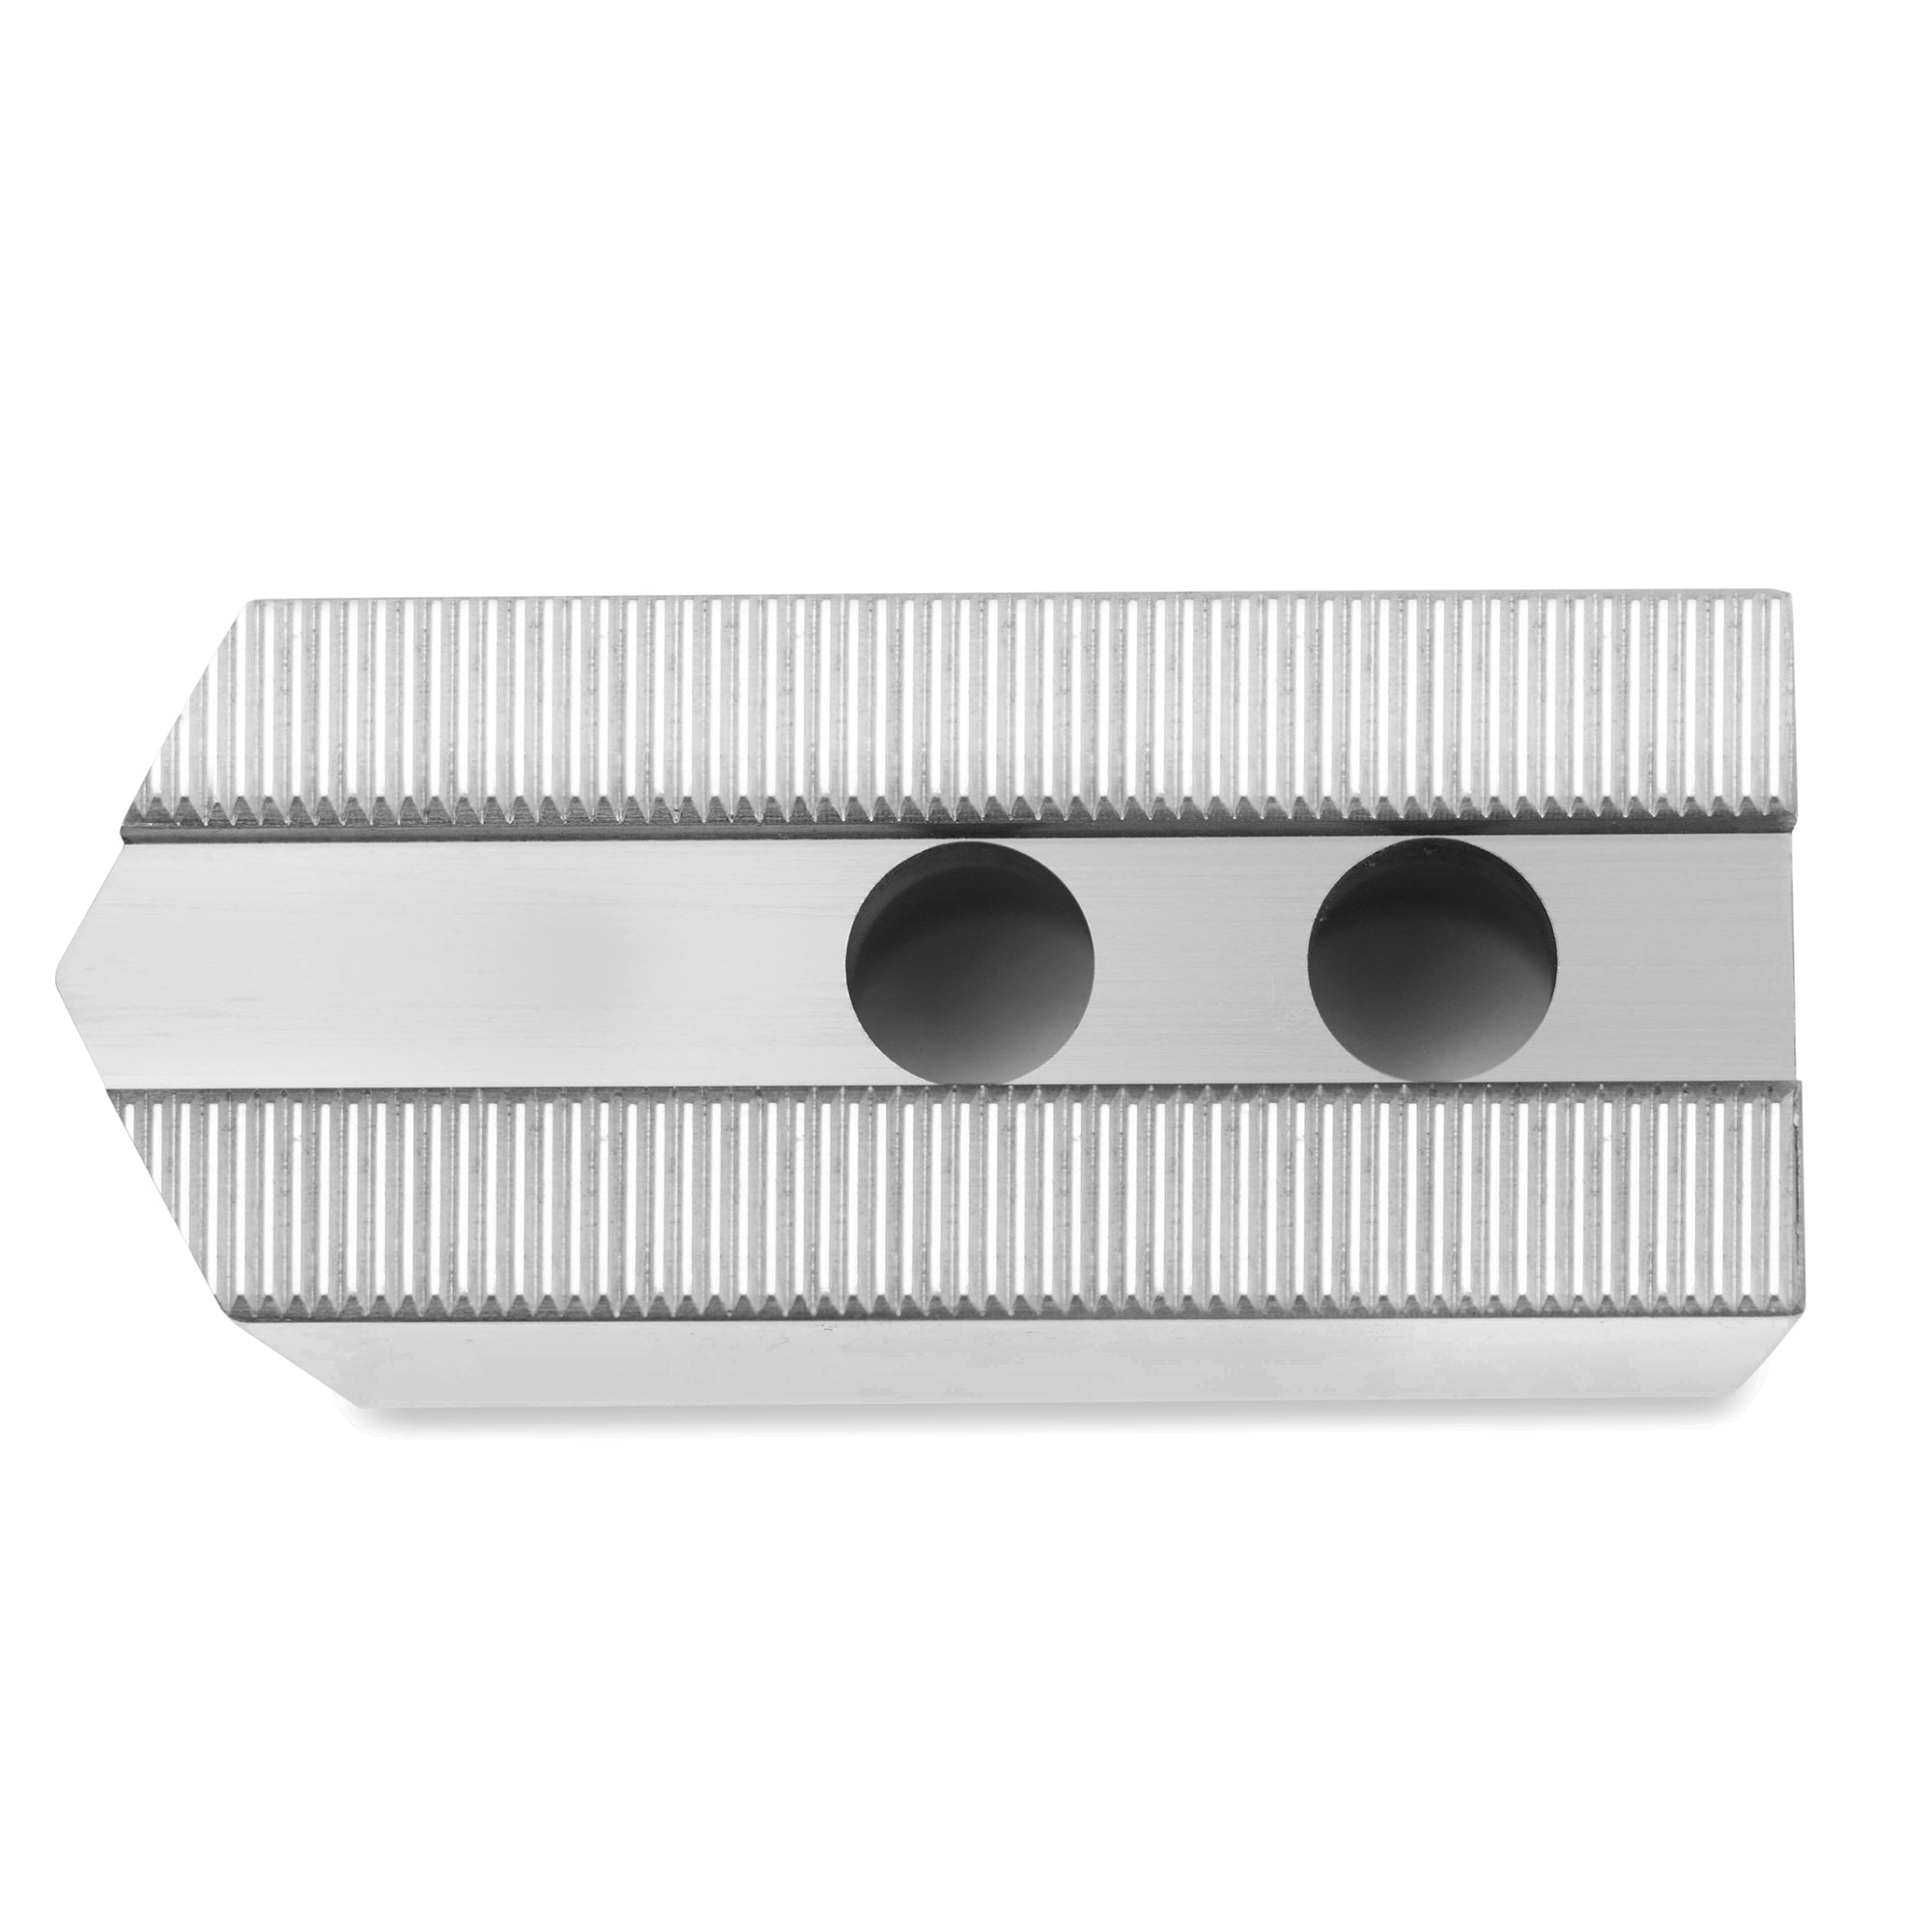 """2.0/"""" HT 10/"""" Steel Soft Jaws 1.5mm x 60° Serrated for B-210 Type Chucks POINTED"""